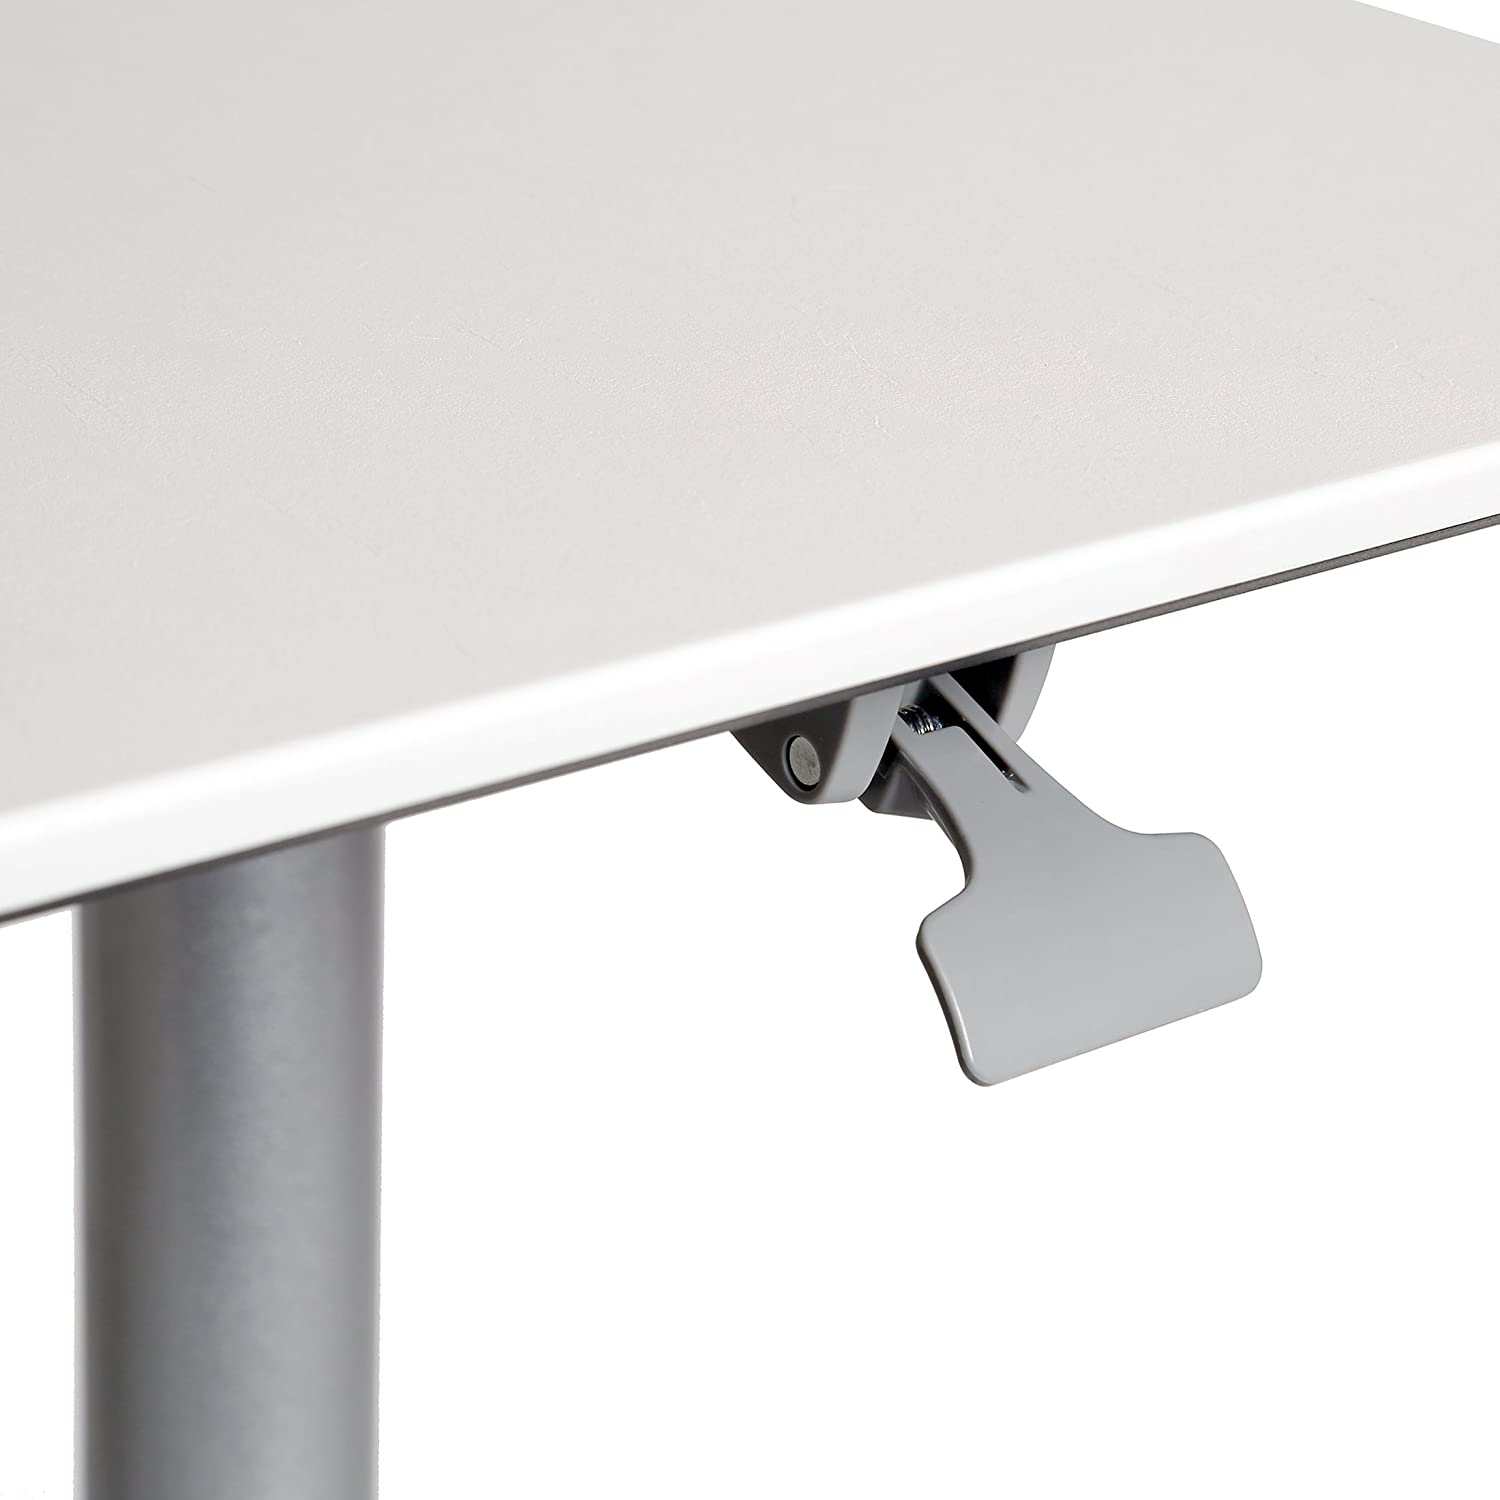 White 27.1 to 41.9 H Seville Classics AIRLIFT XL 28 Pneumatic Height Adjustable Sit-Stand Mobile Laptop Computer Desk Cart